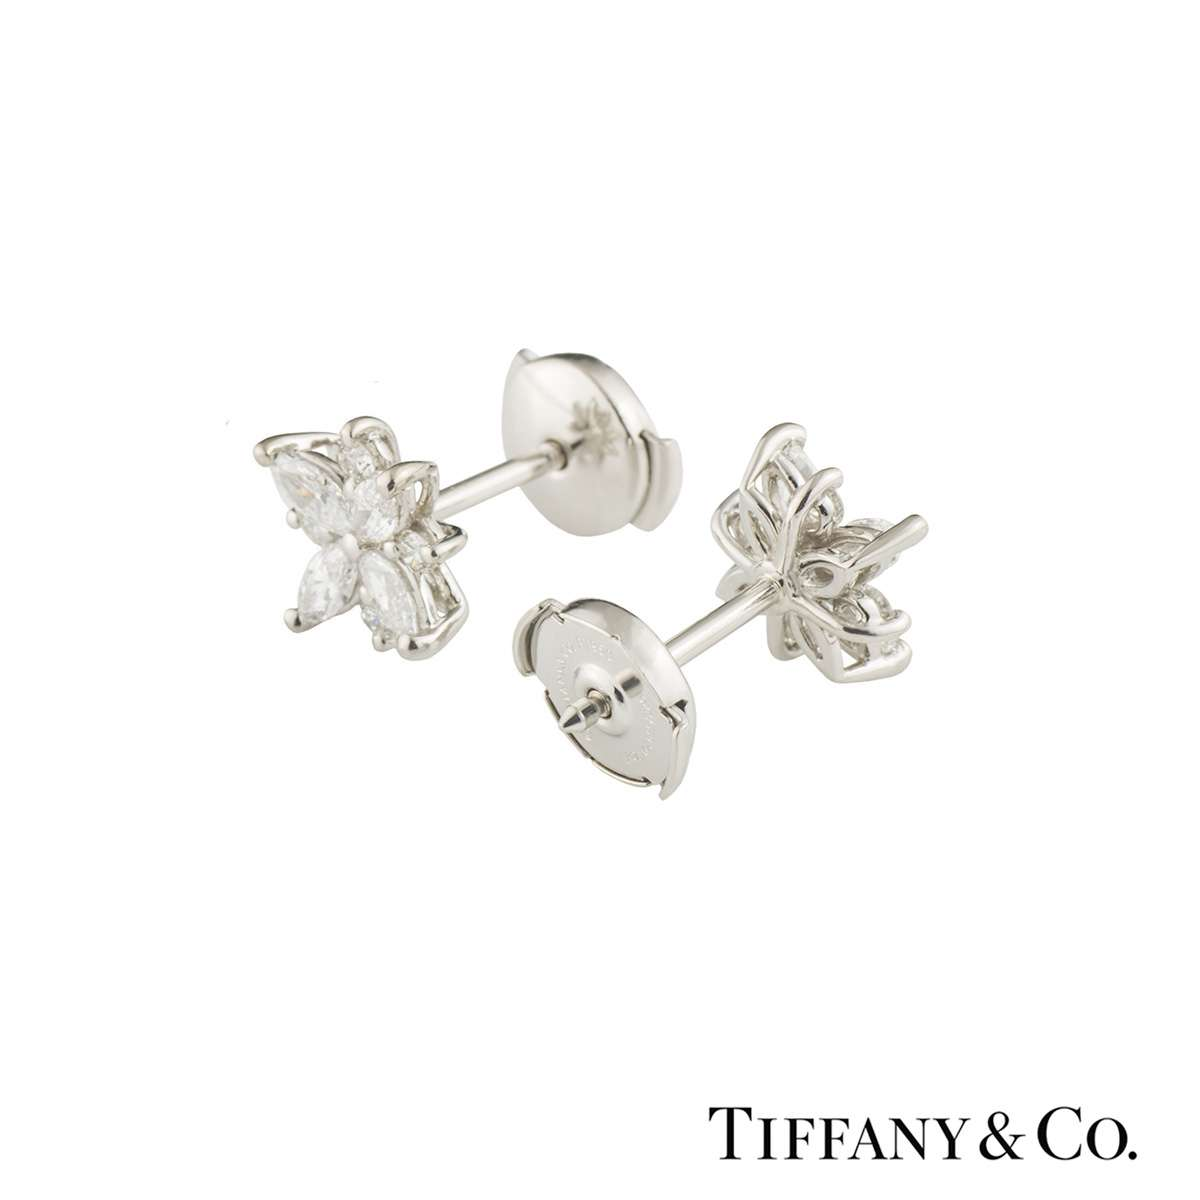 Tiffany & Co. Victoria Cluster Diamond Earrings